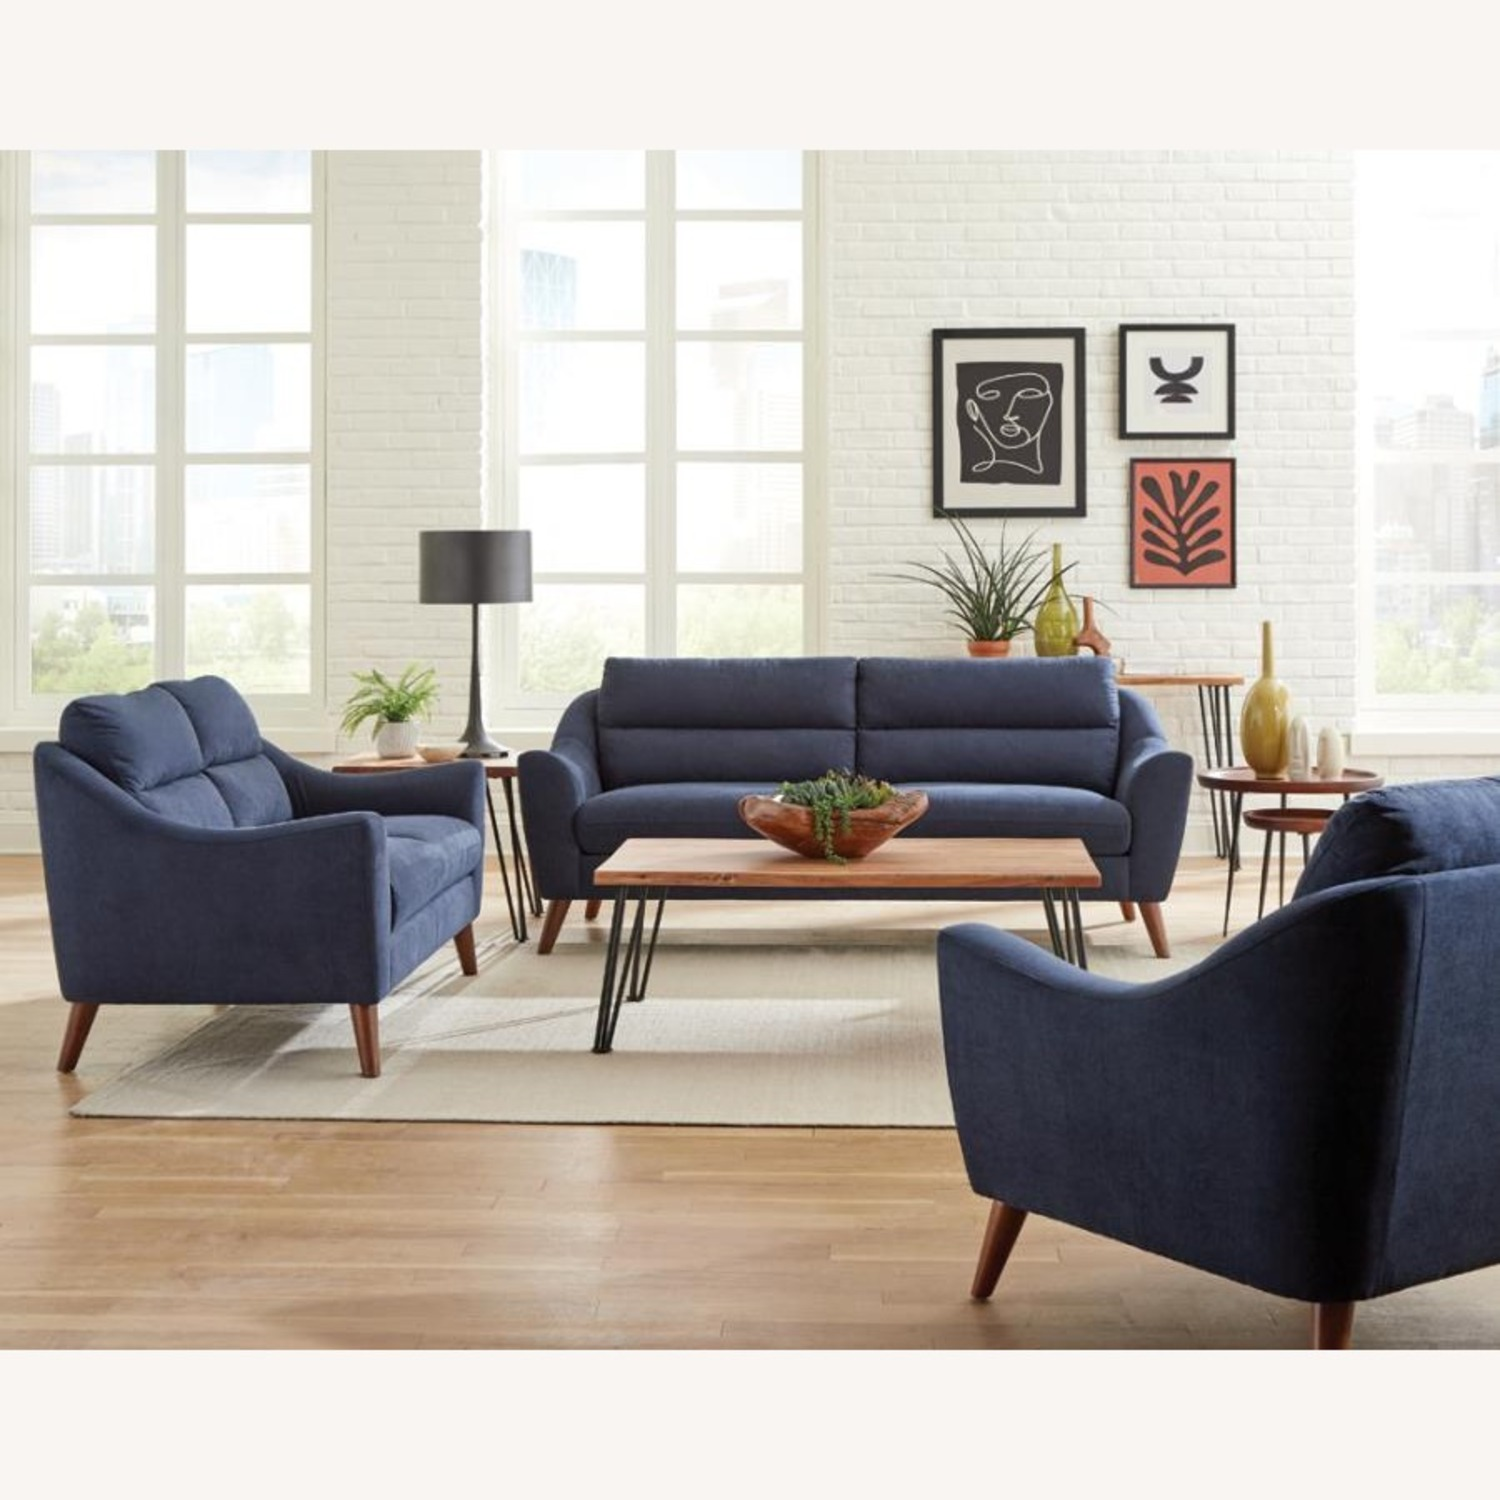 Sofa In Navy Blue Woven Fabric W/ Tapered Legs - image-1